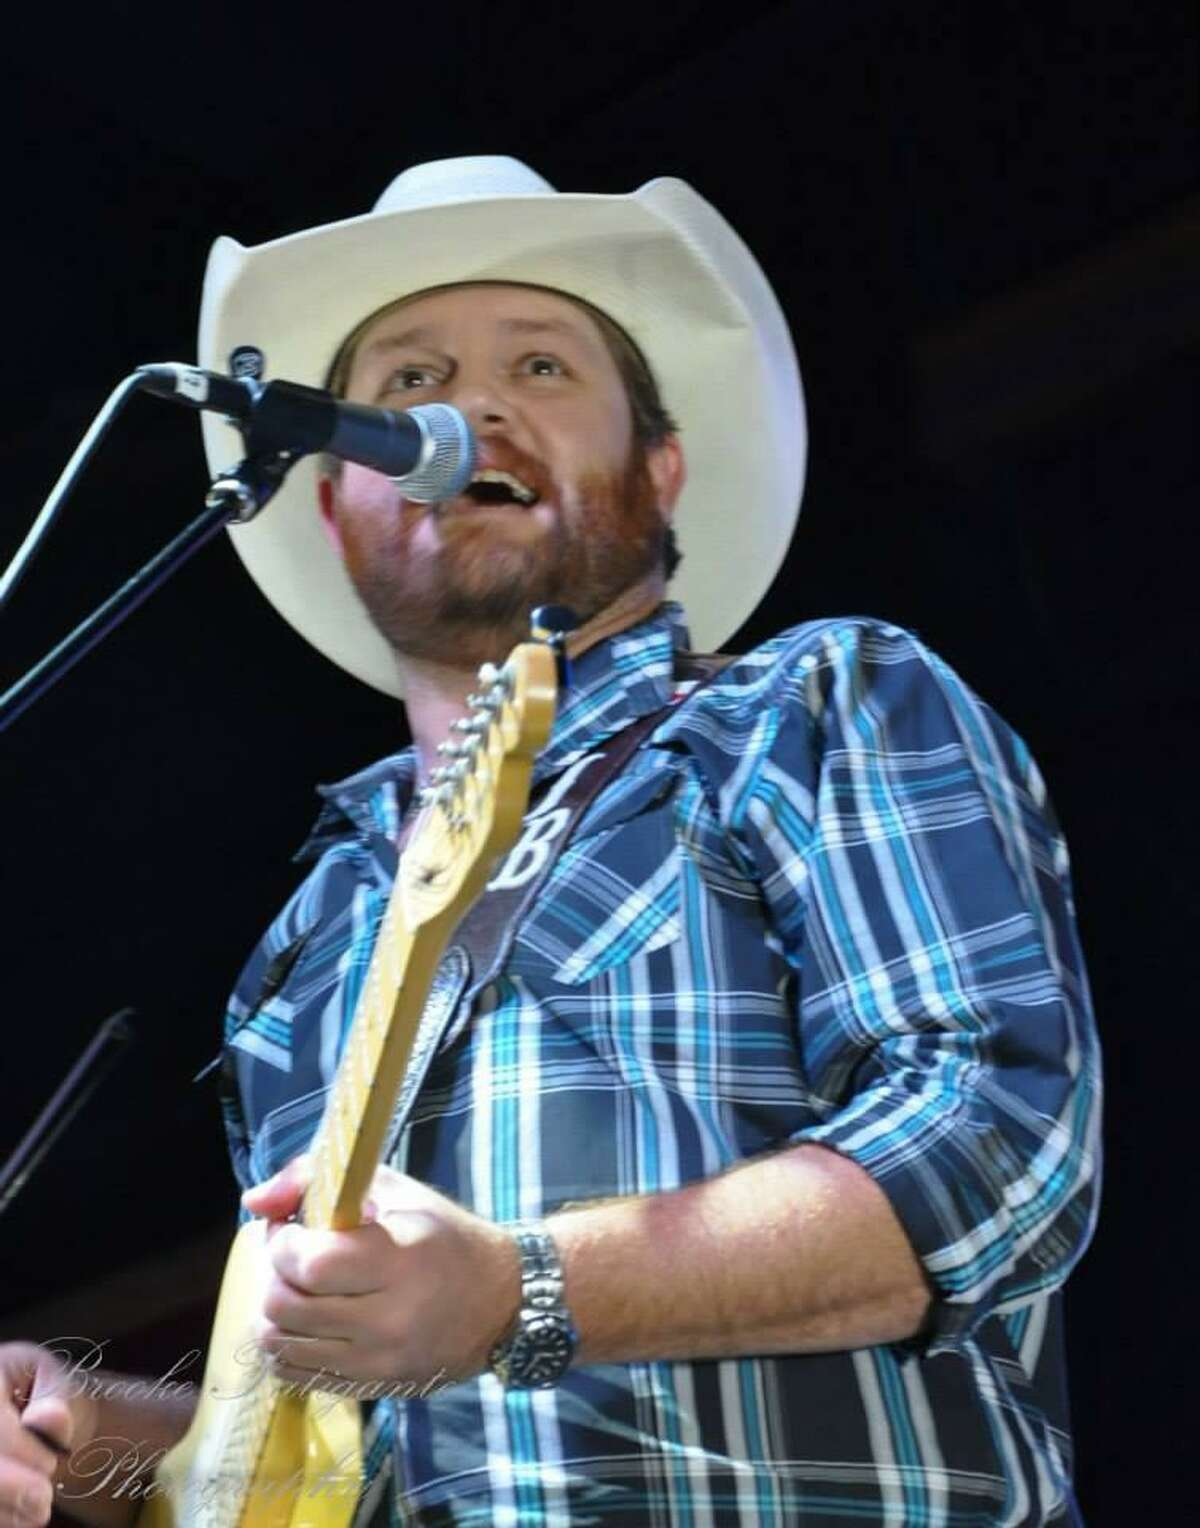 Jody Booth will be among the musicians performing during the Montgomery County VetFest 21 May 1 at Outback Western Wear in Magnolia.